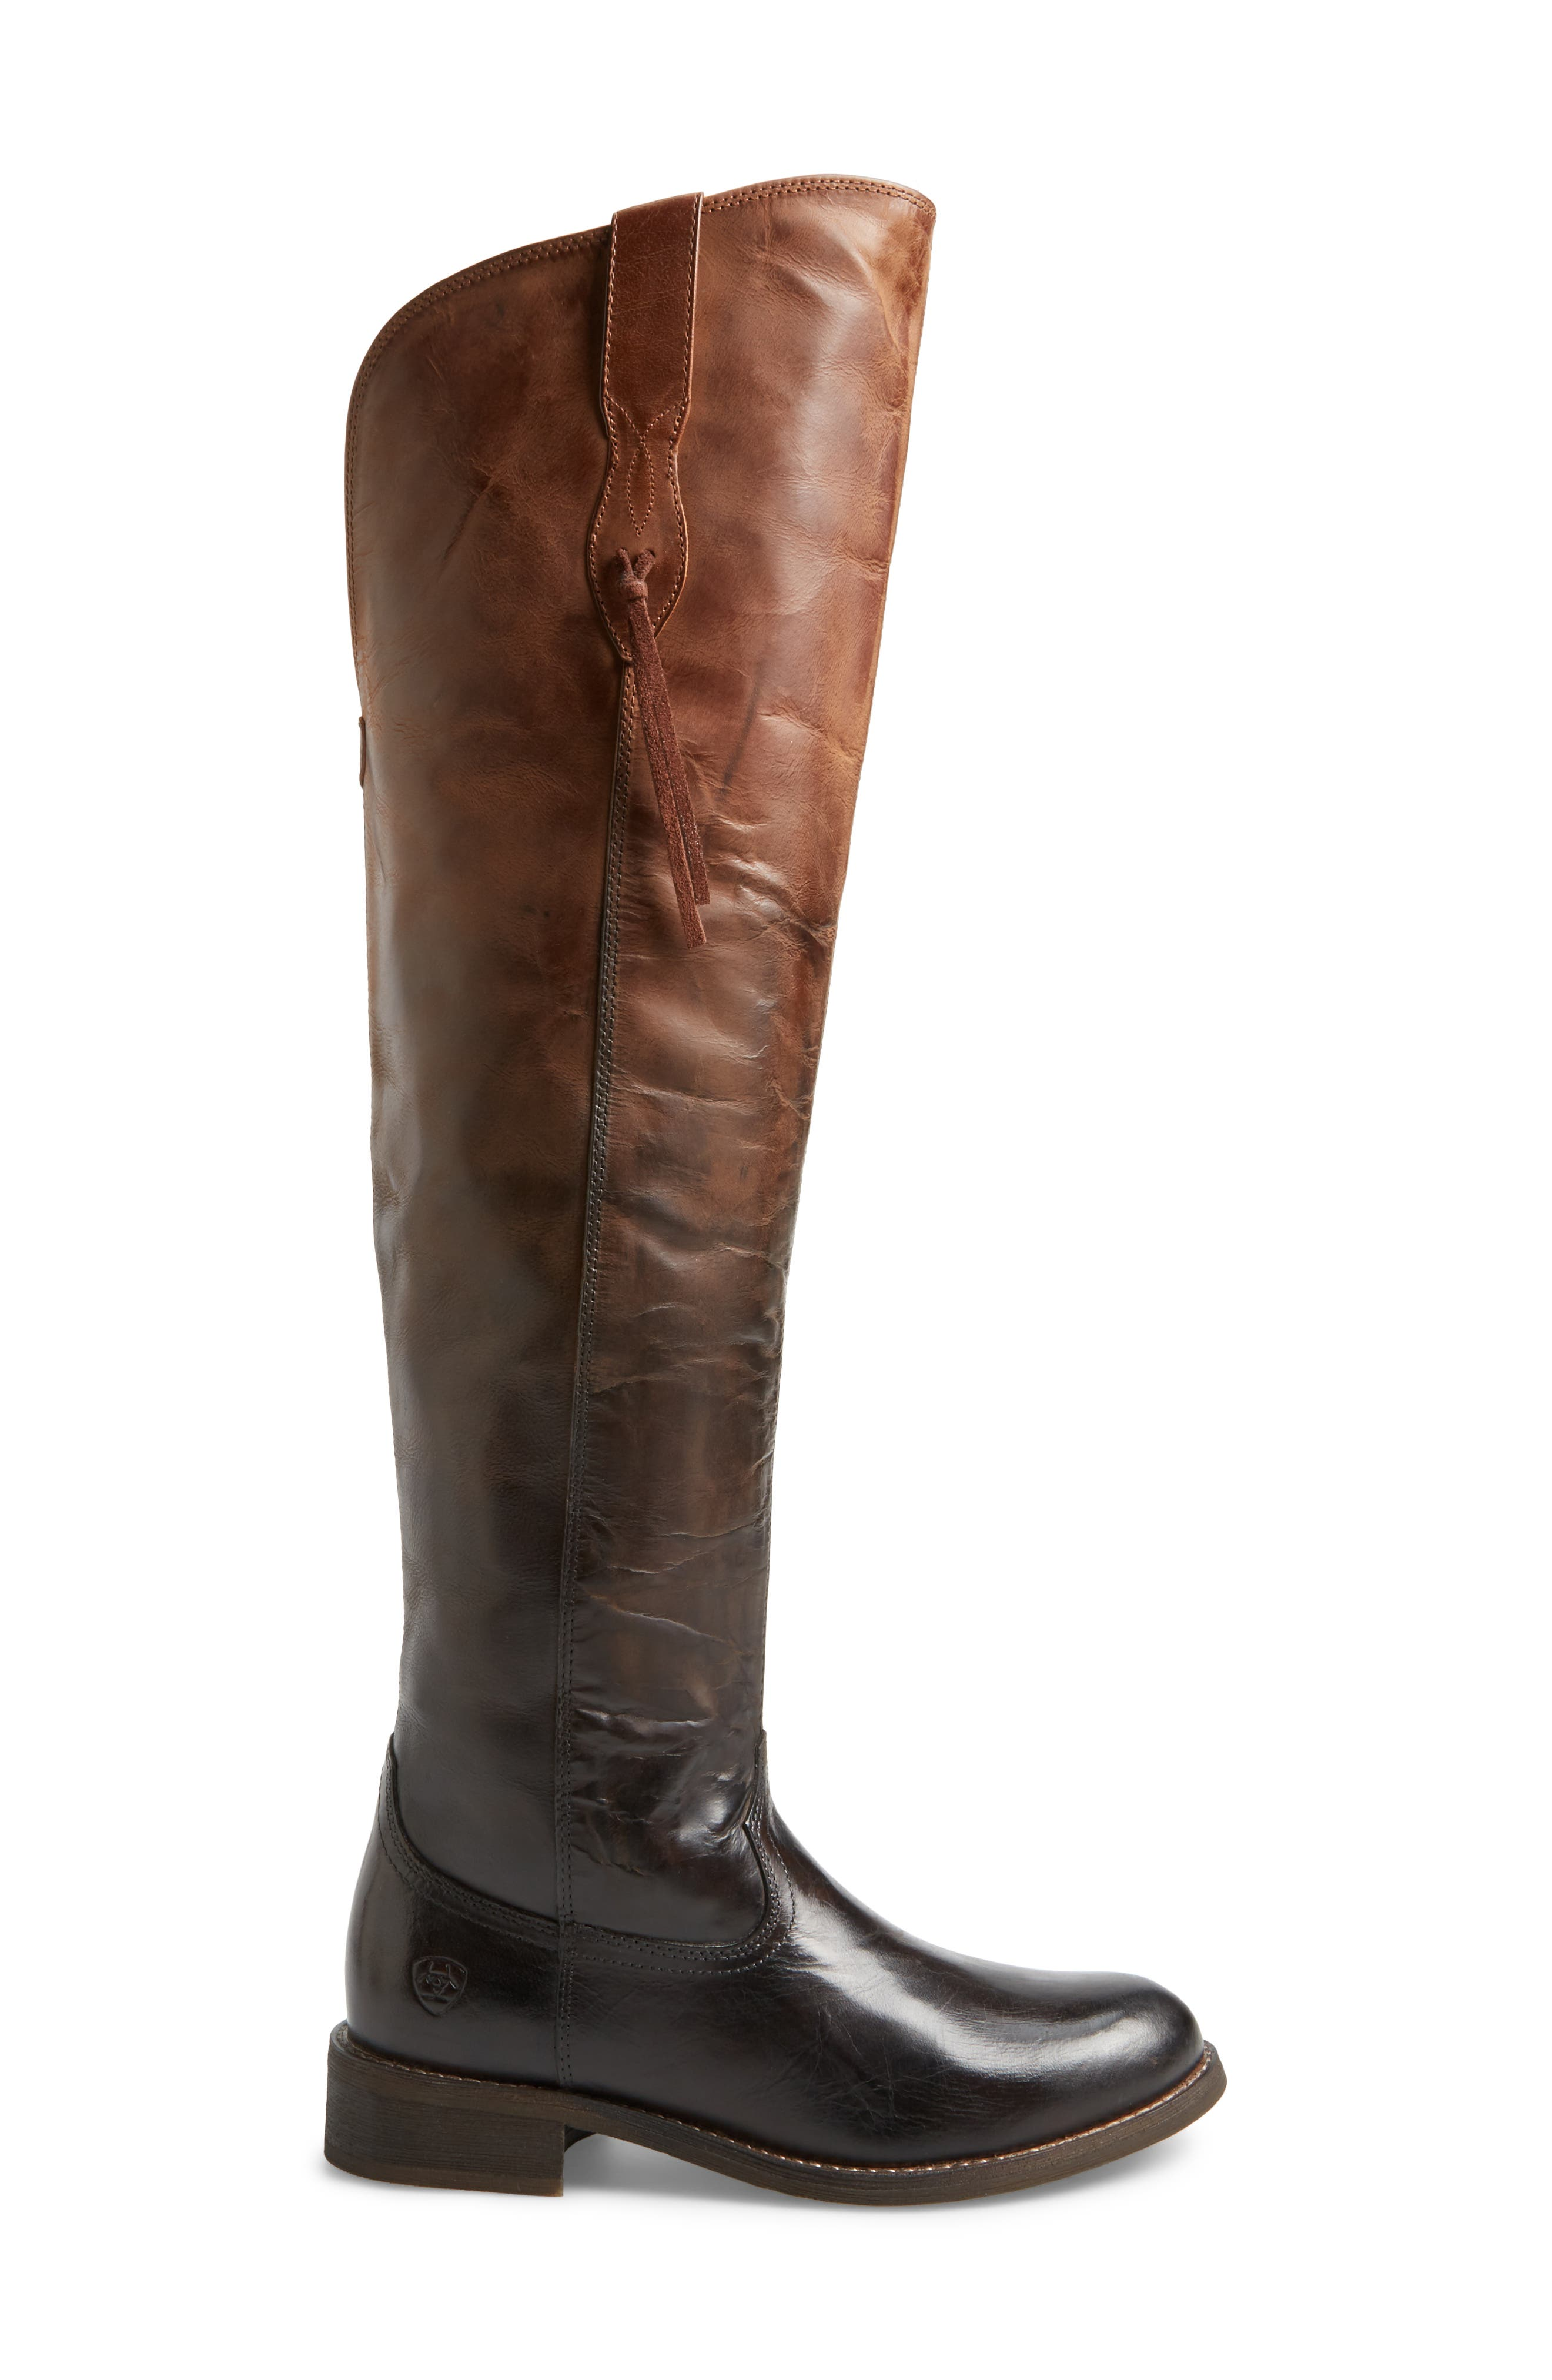 Farrah Over the Knee Boot,                             Alternate thumbnail 3, color,                             Sassy Chocolate Leather